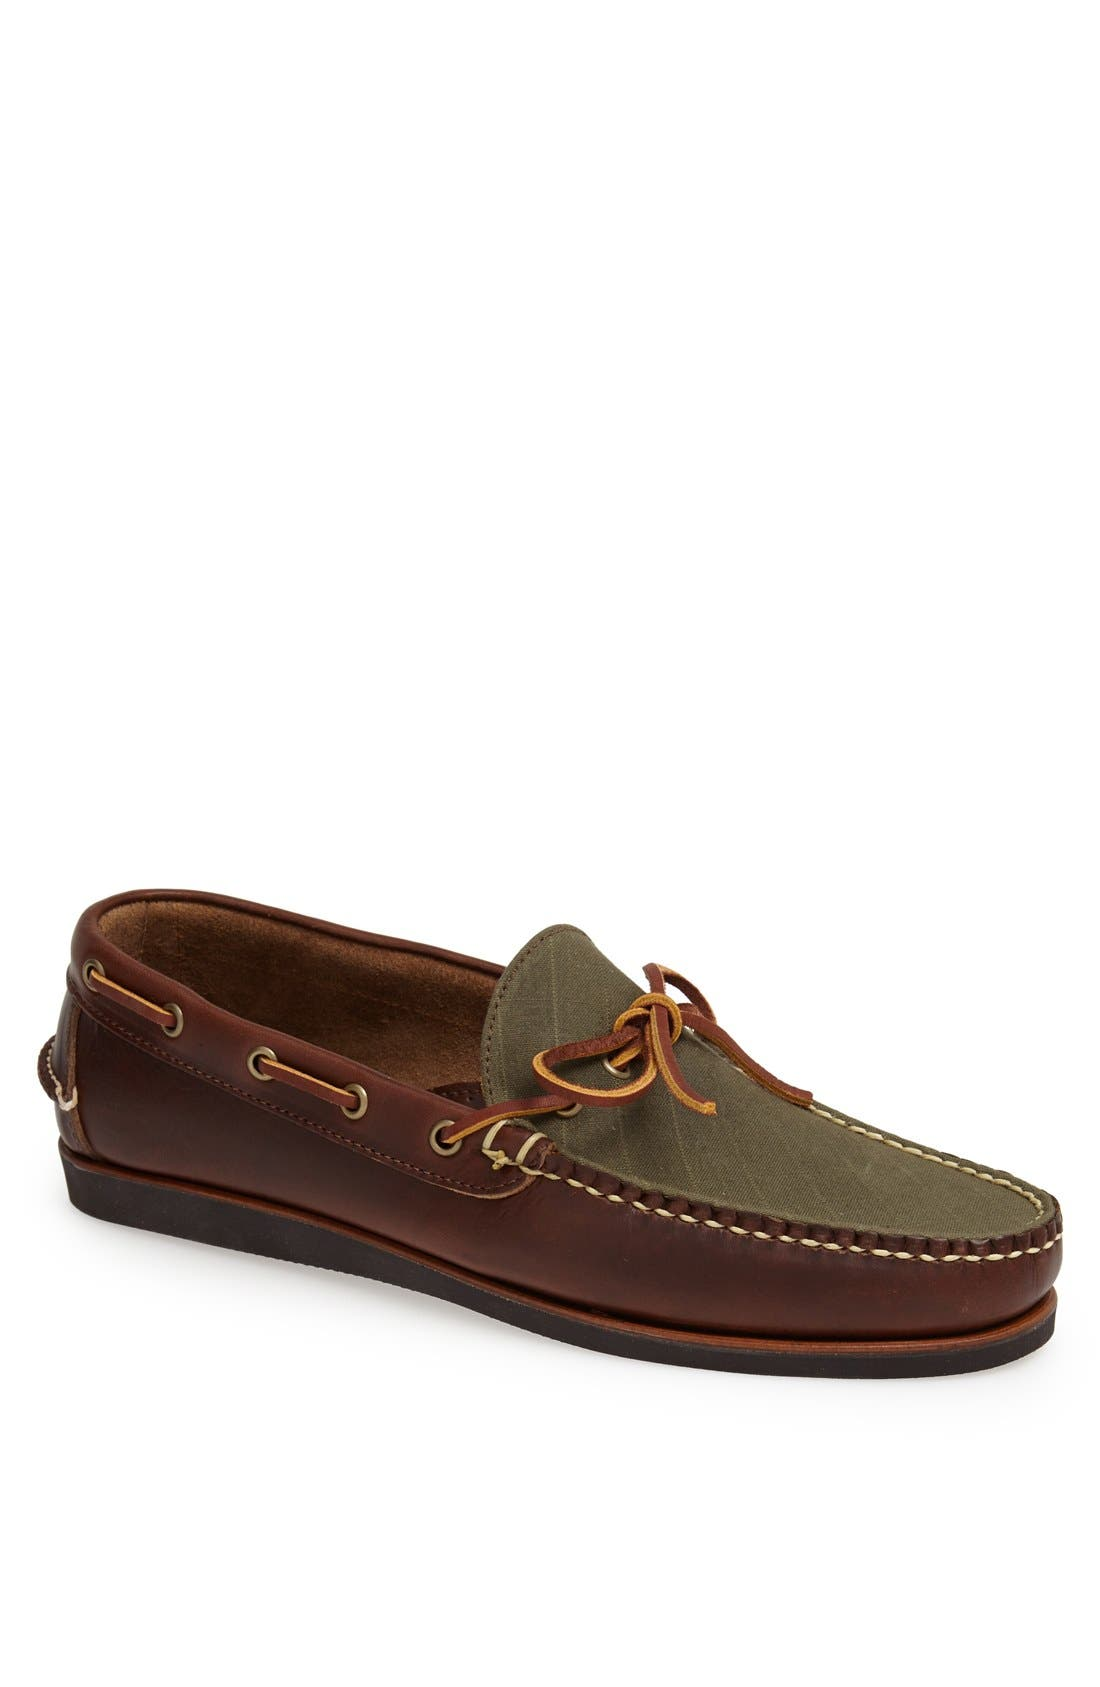 Main Image - Eastland Made in Maine 'Yarmouth USA' Boat Shoe